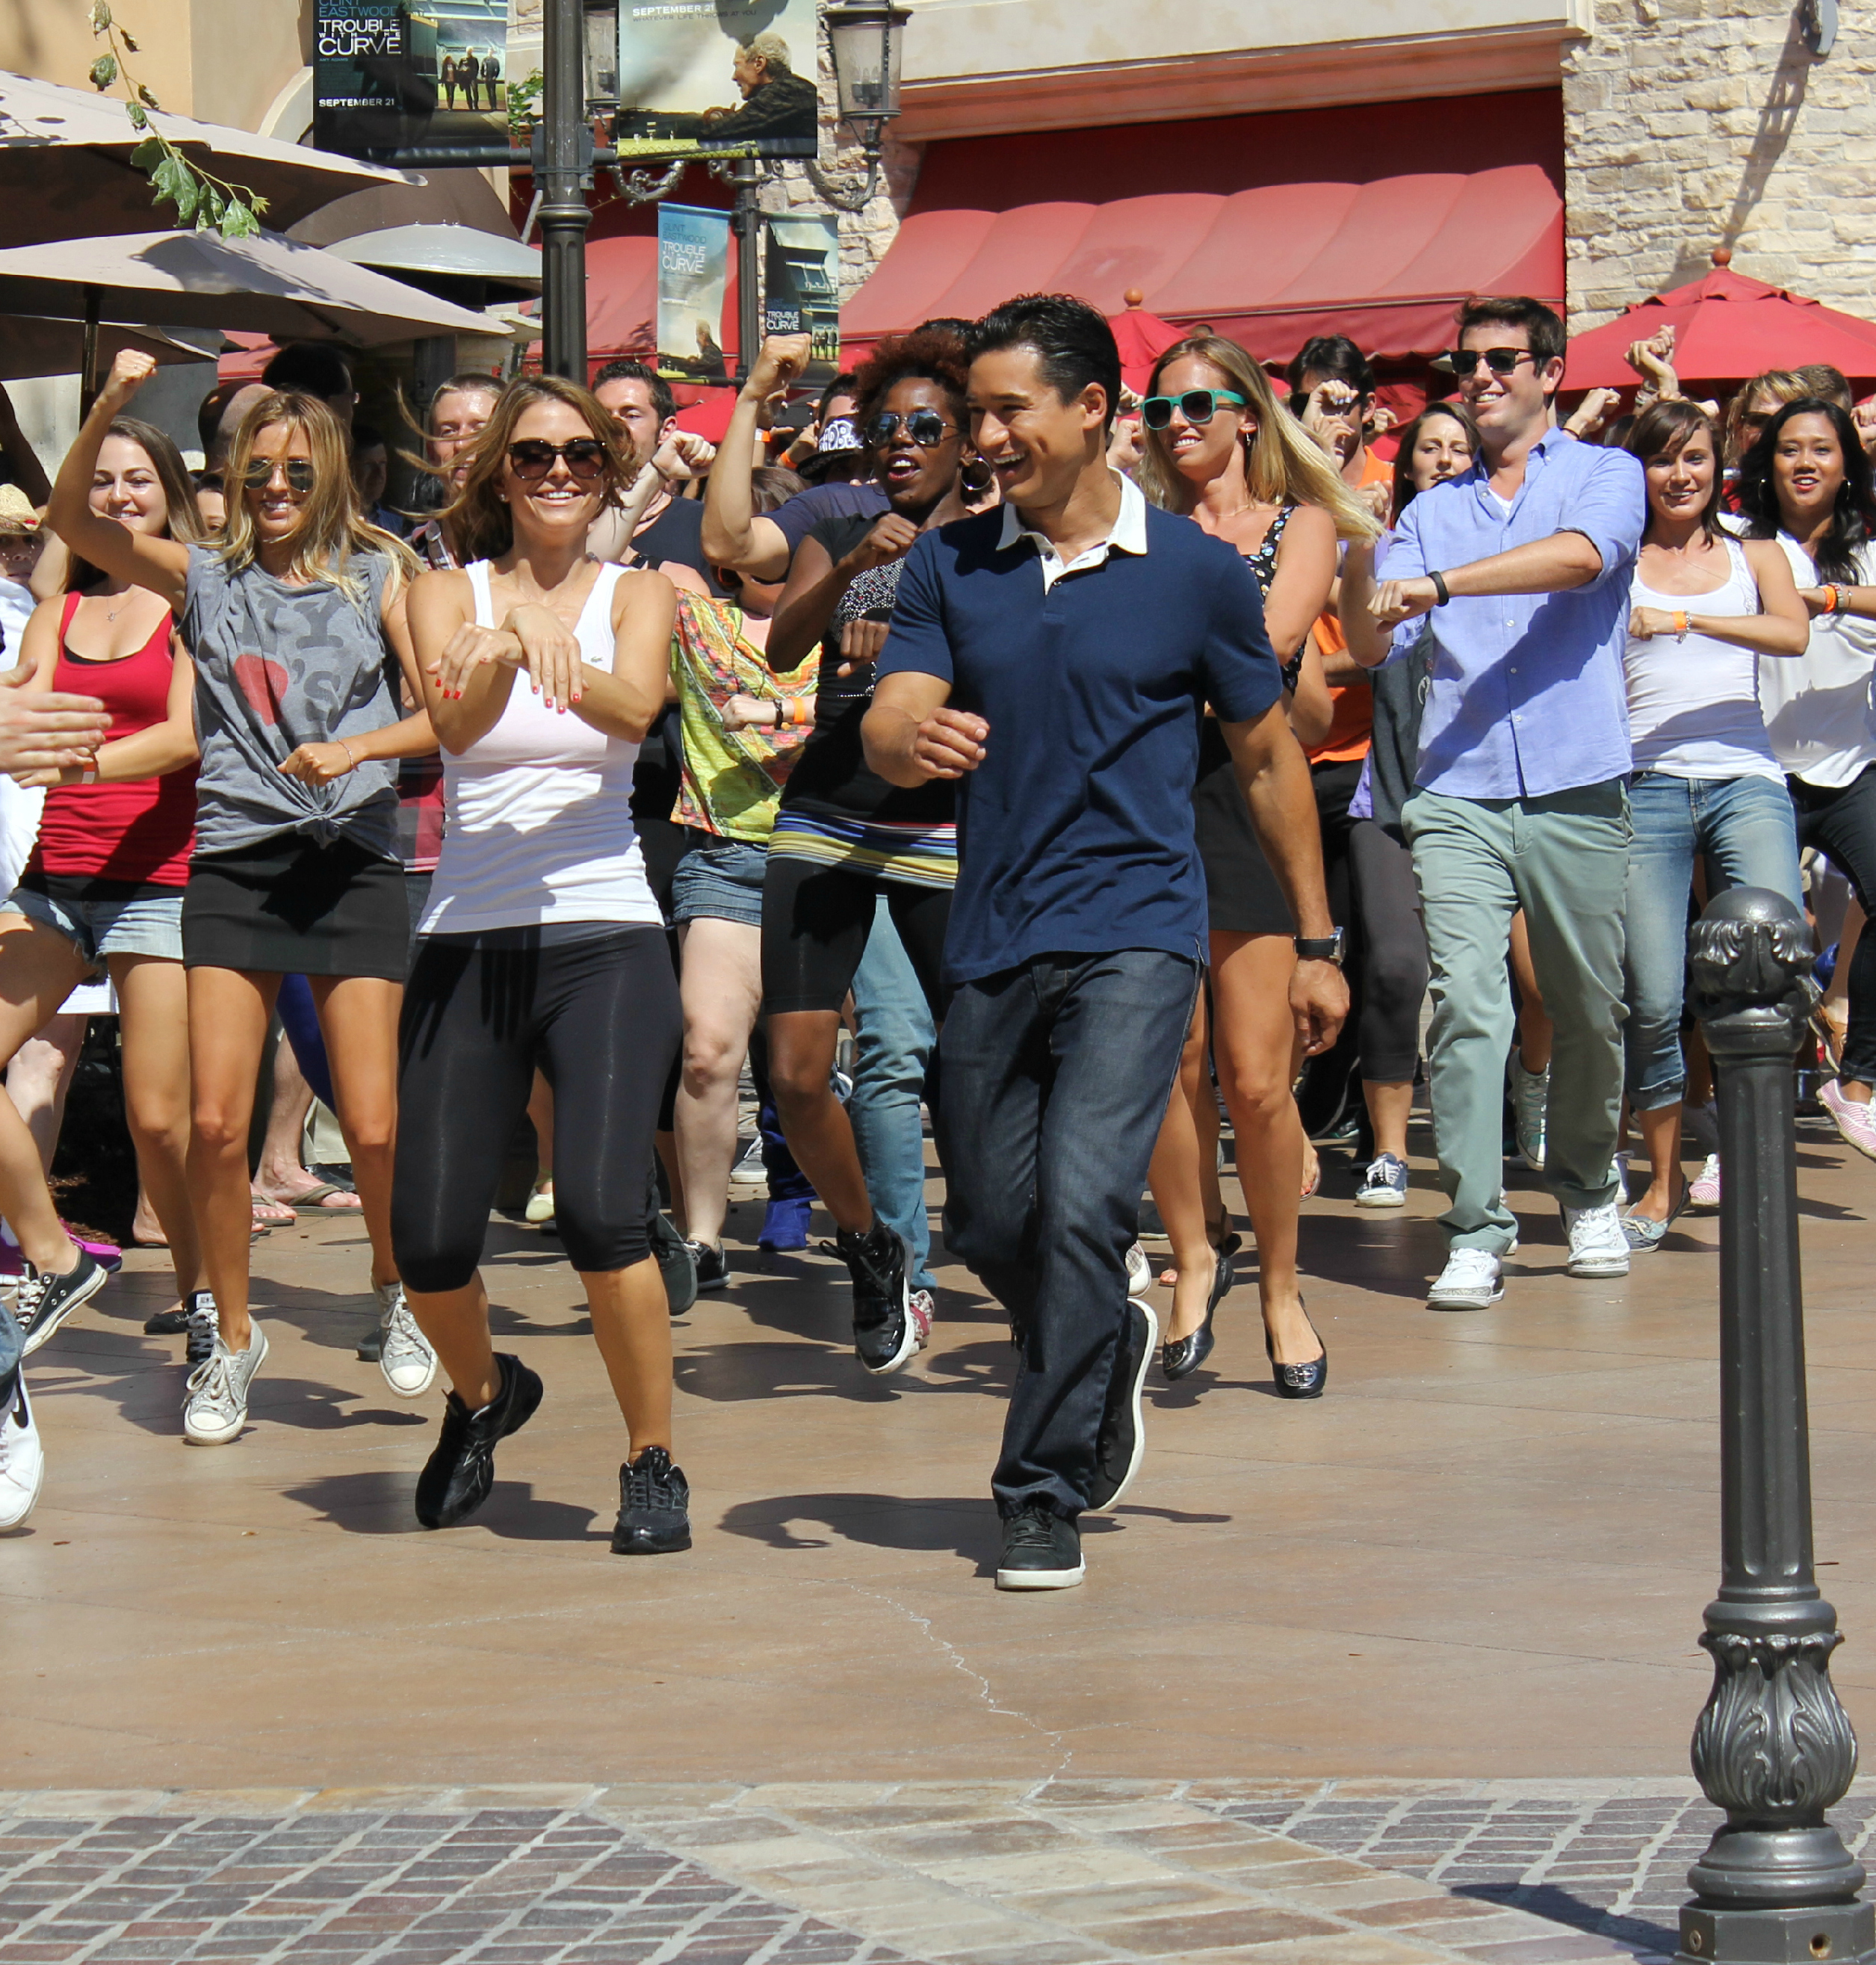 Maria Menounos and Mario Lopez lead Psy's Gangnam Style flash mob